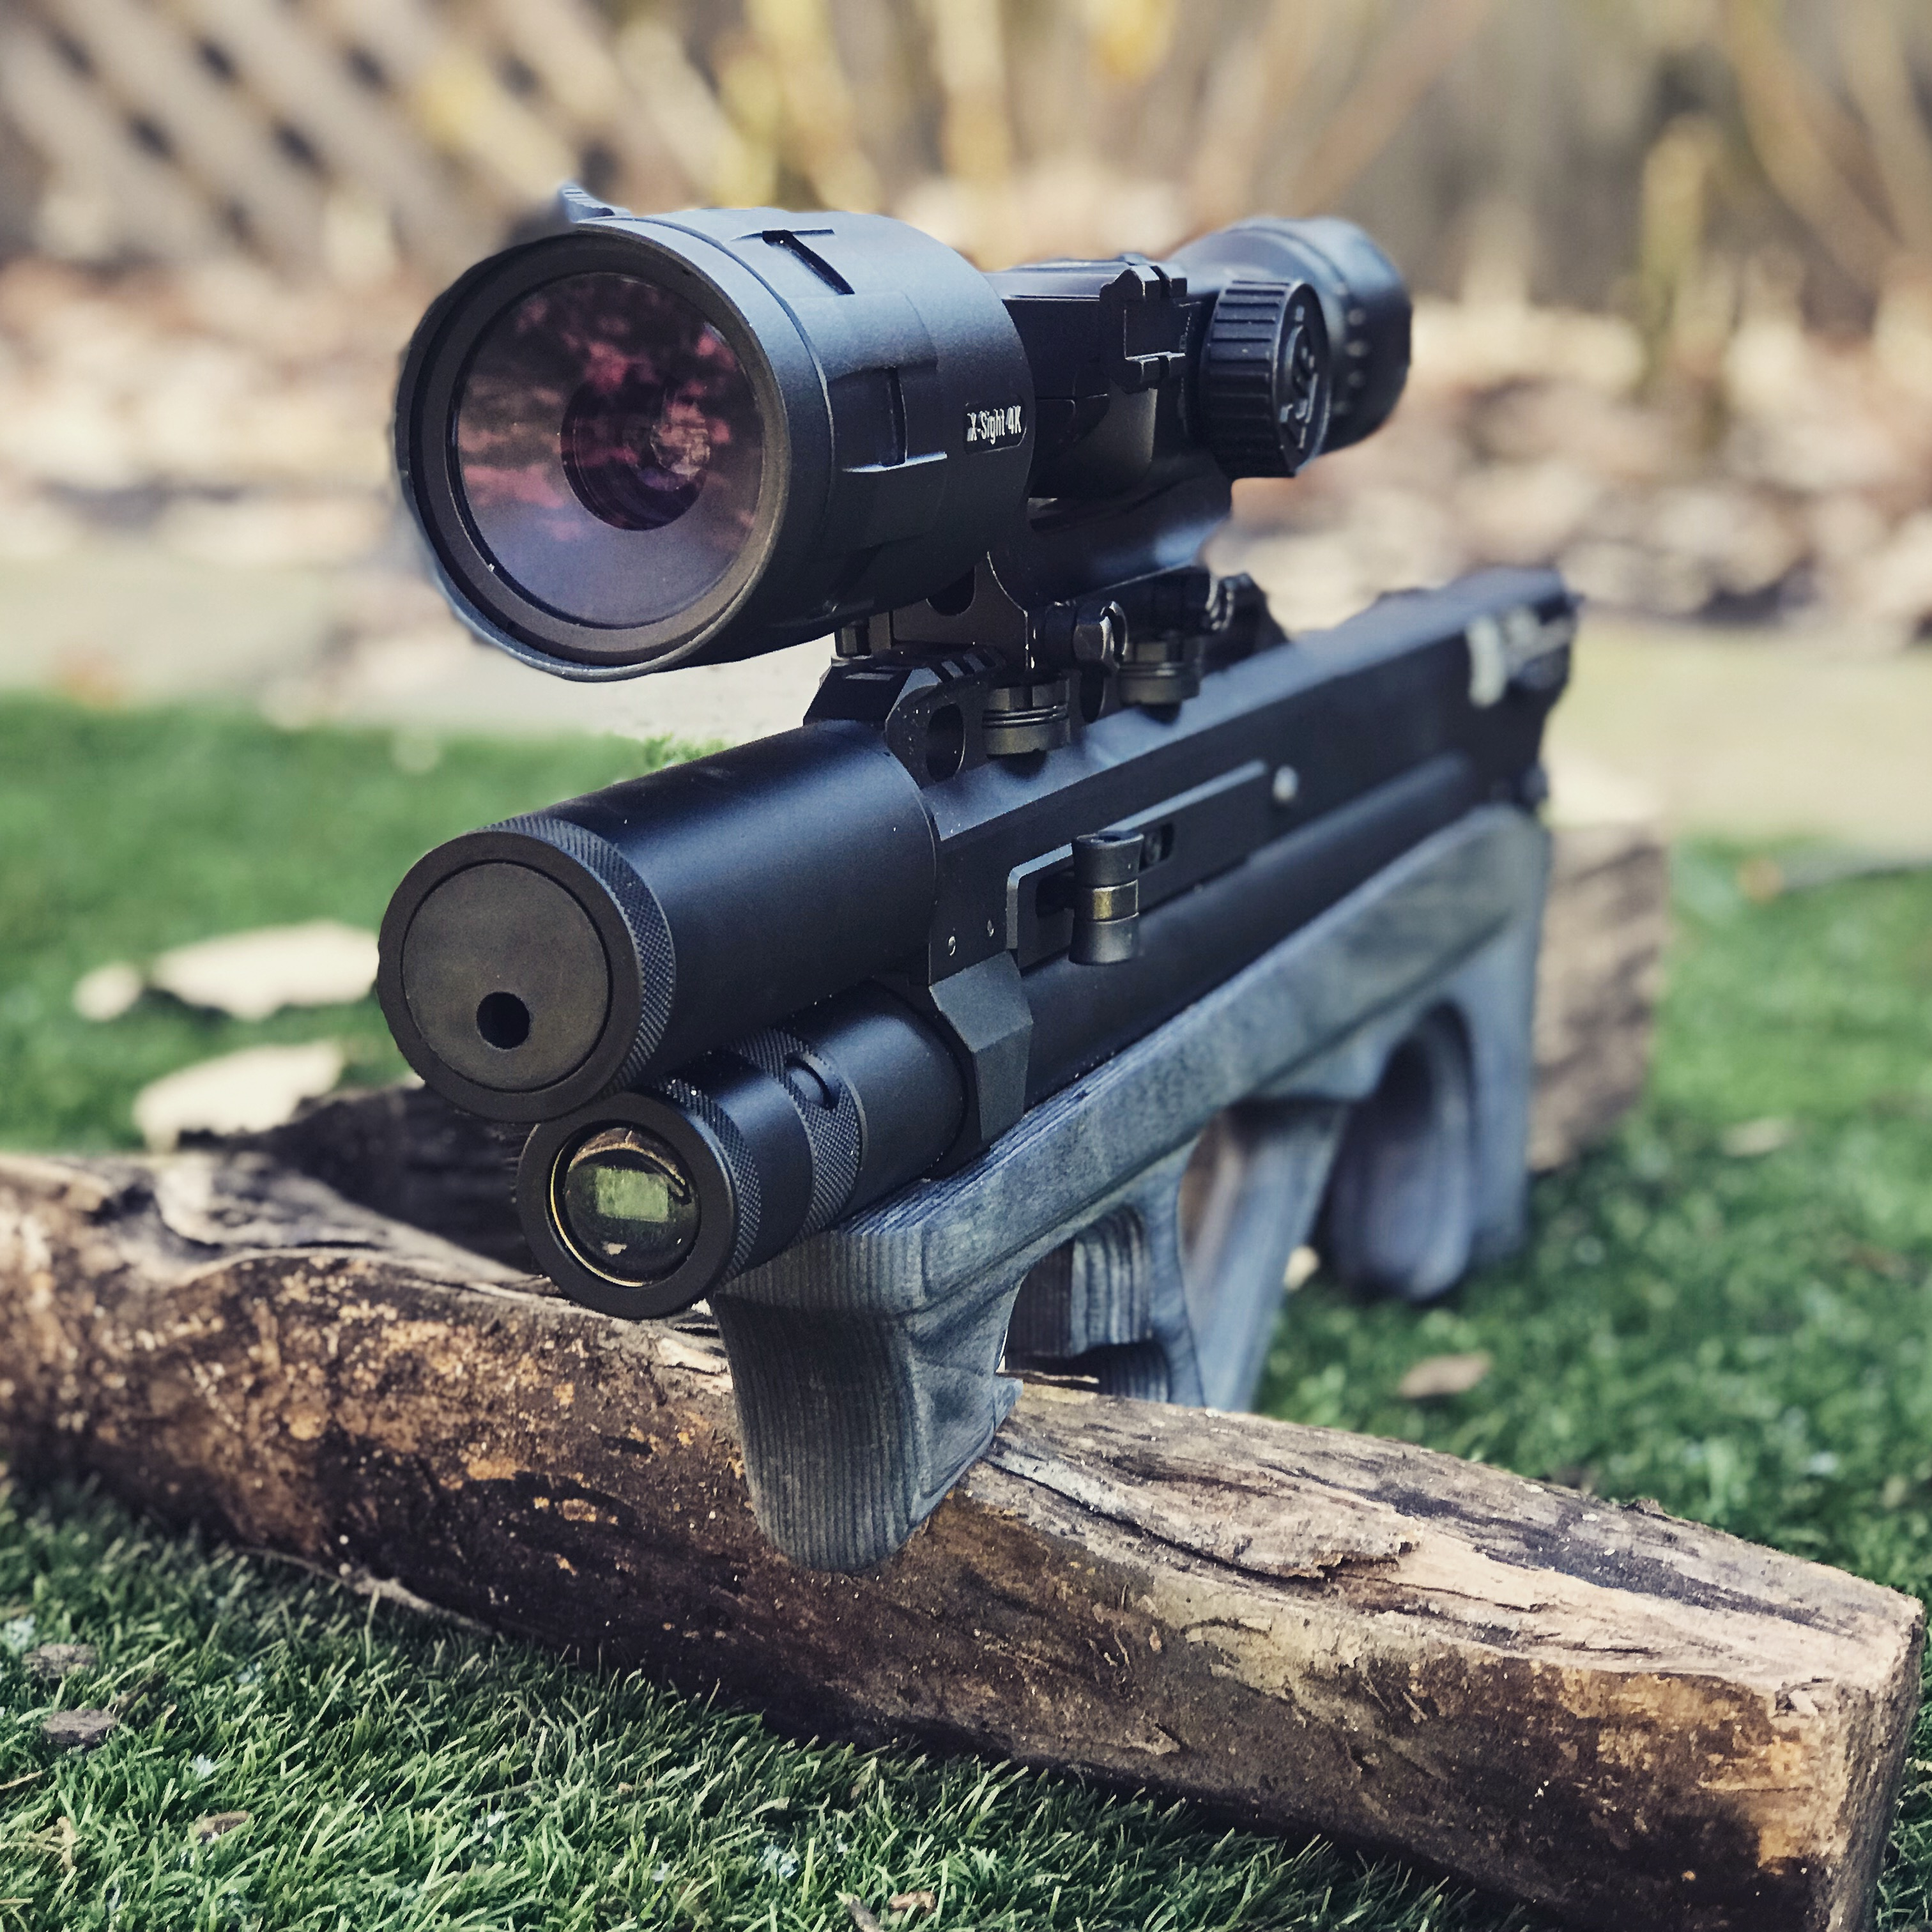 EDgun Leyla 2.0 with ATN X Sight 4K Pro 3-14x